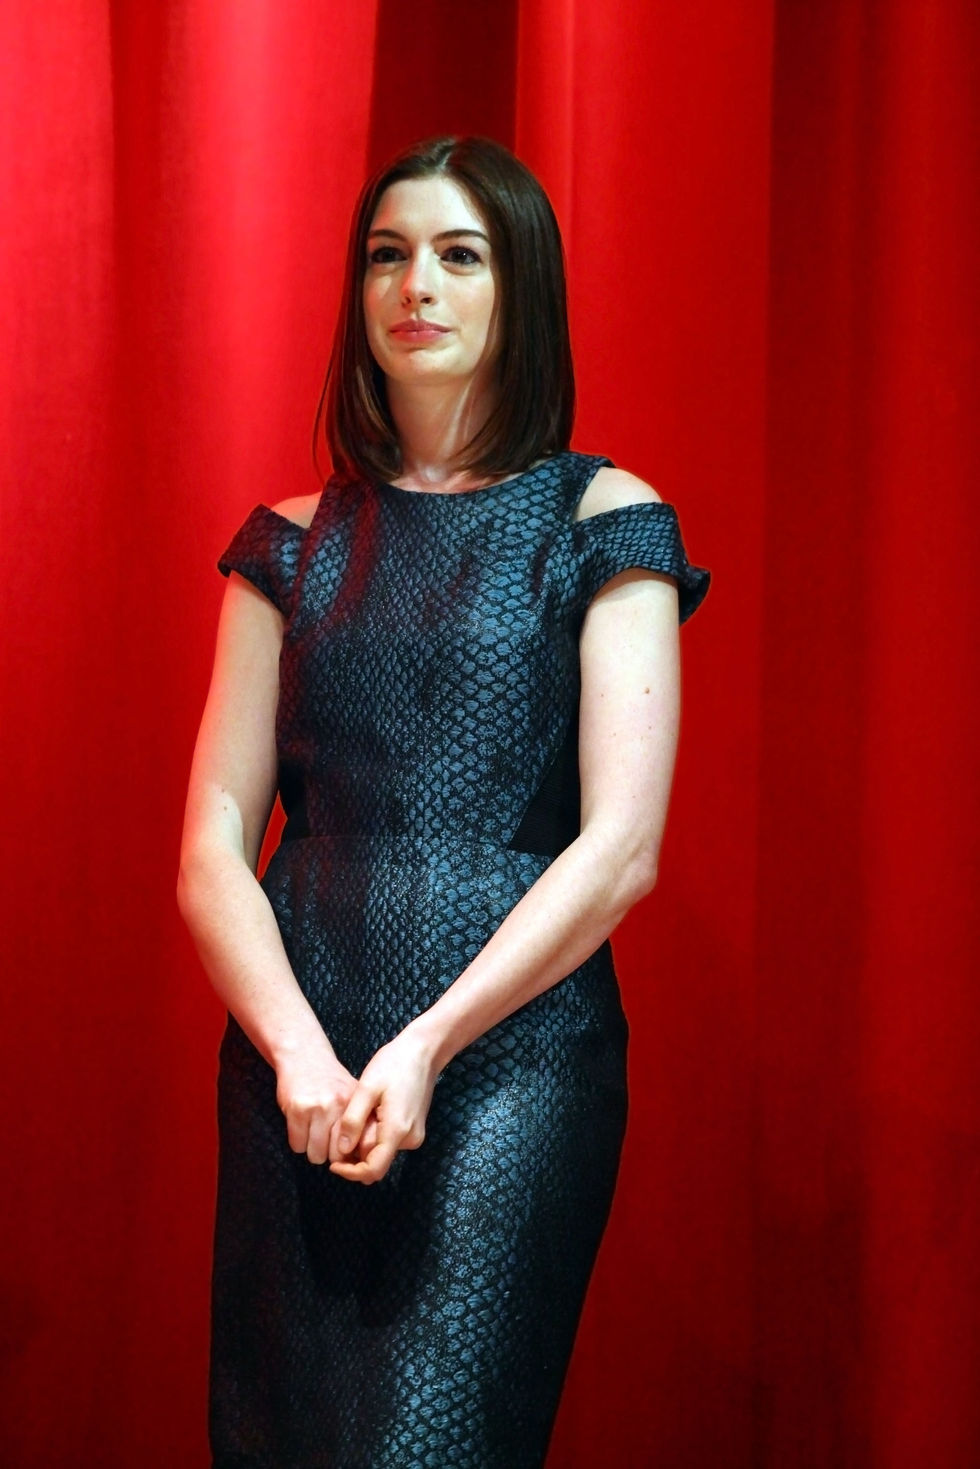 anne-hathaway-54th-annual-village-voice-obie-awards-in-new-york-01